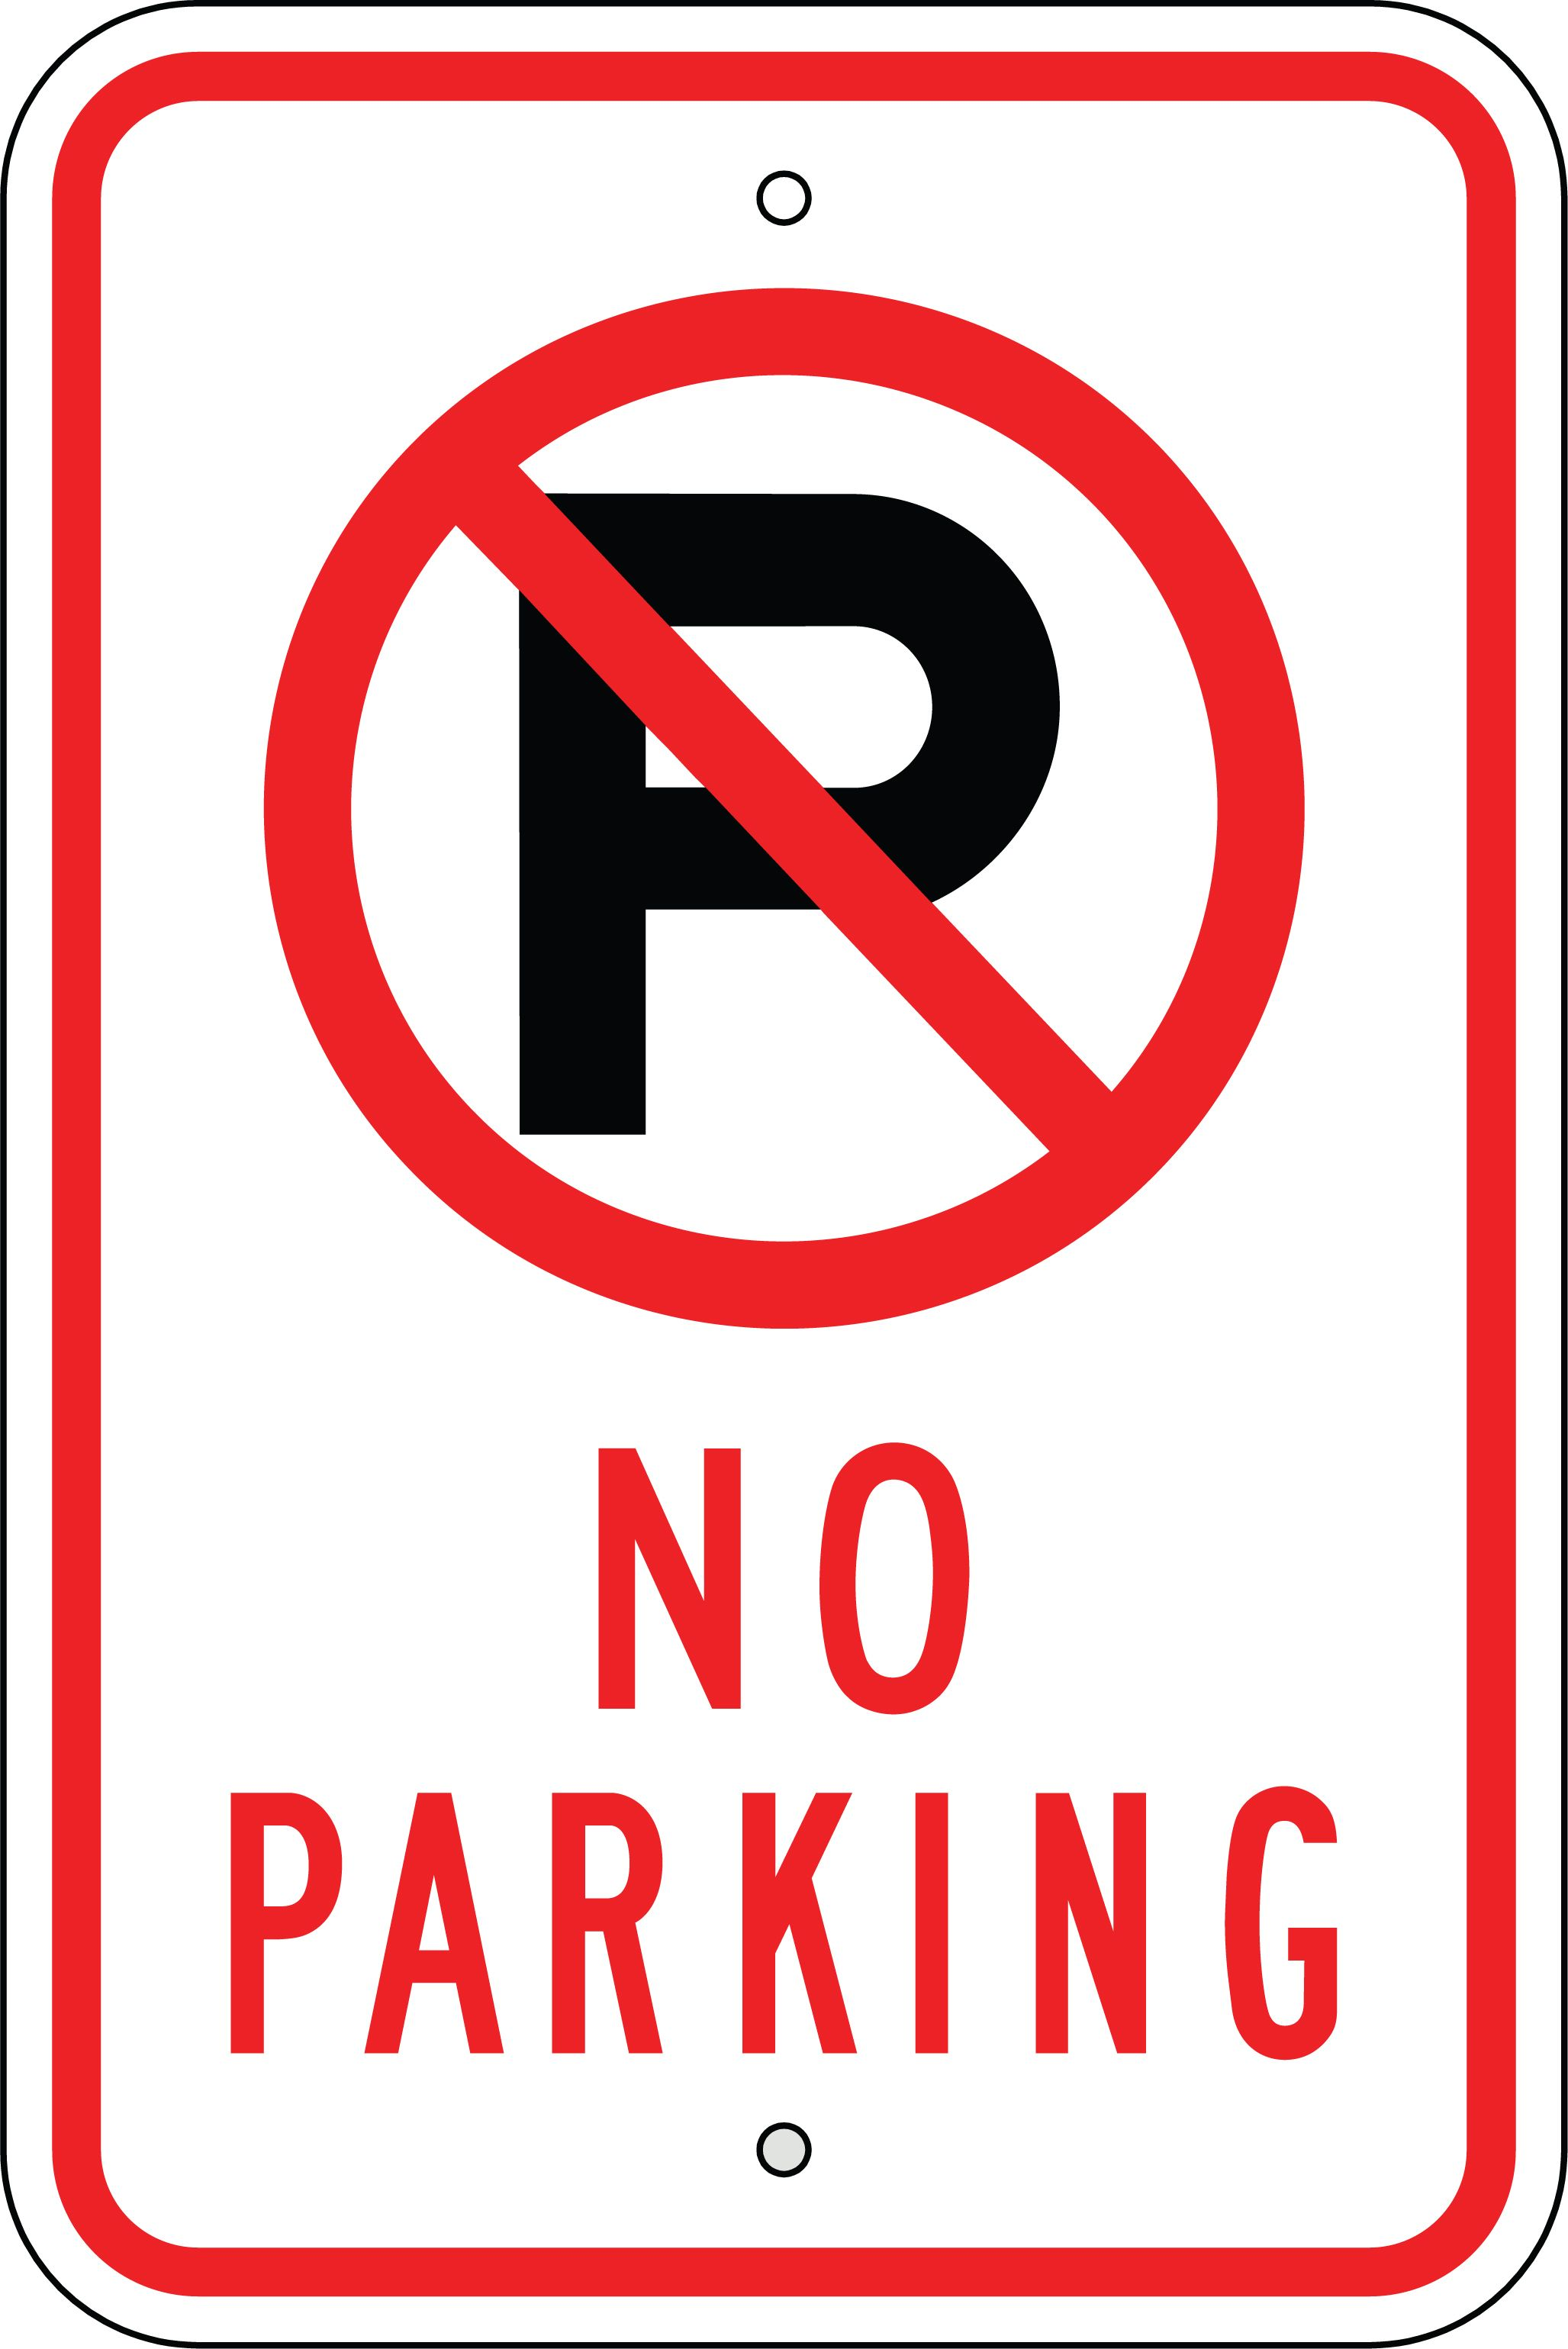 003 no parking signs Parking signs